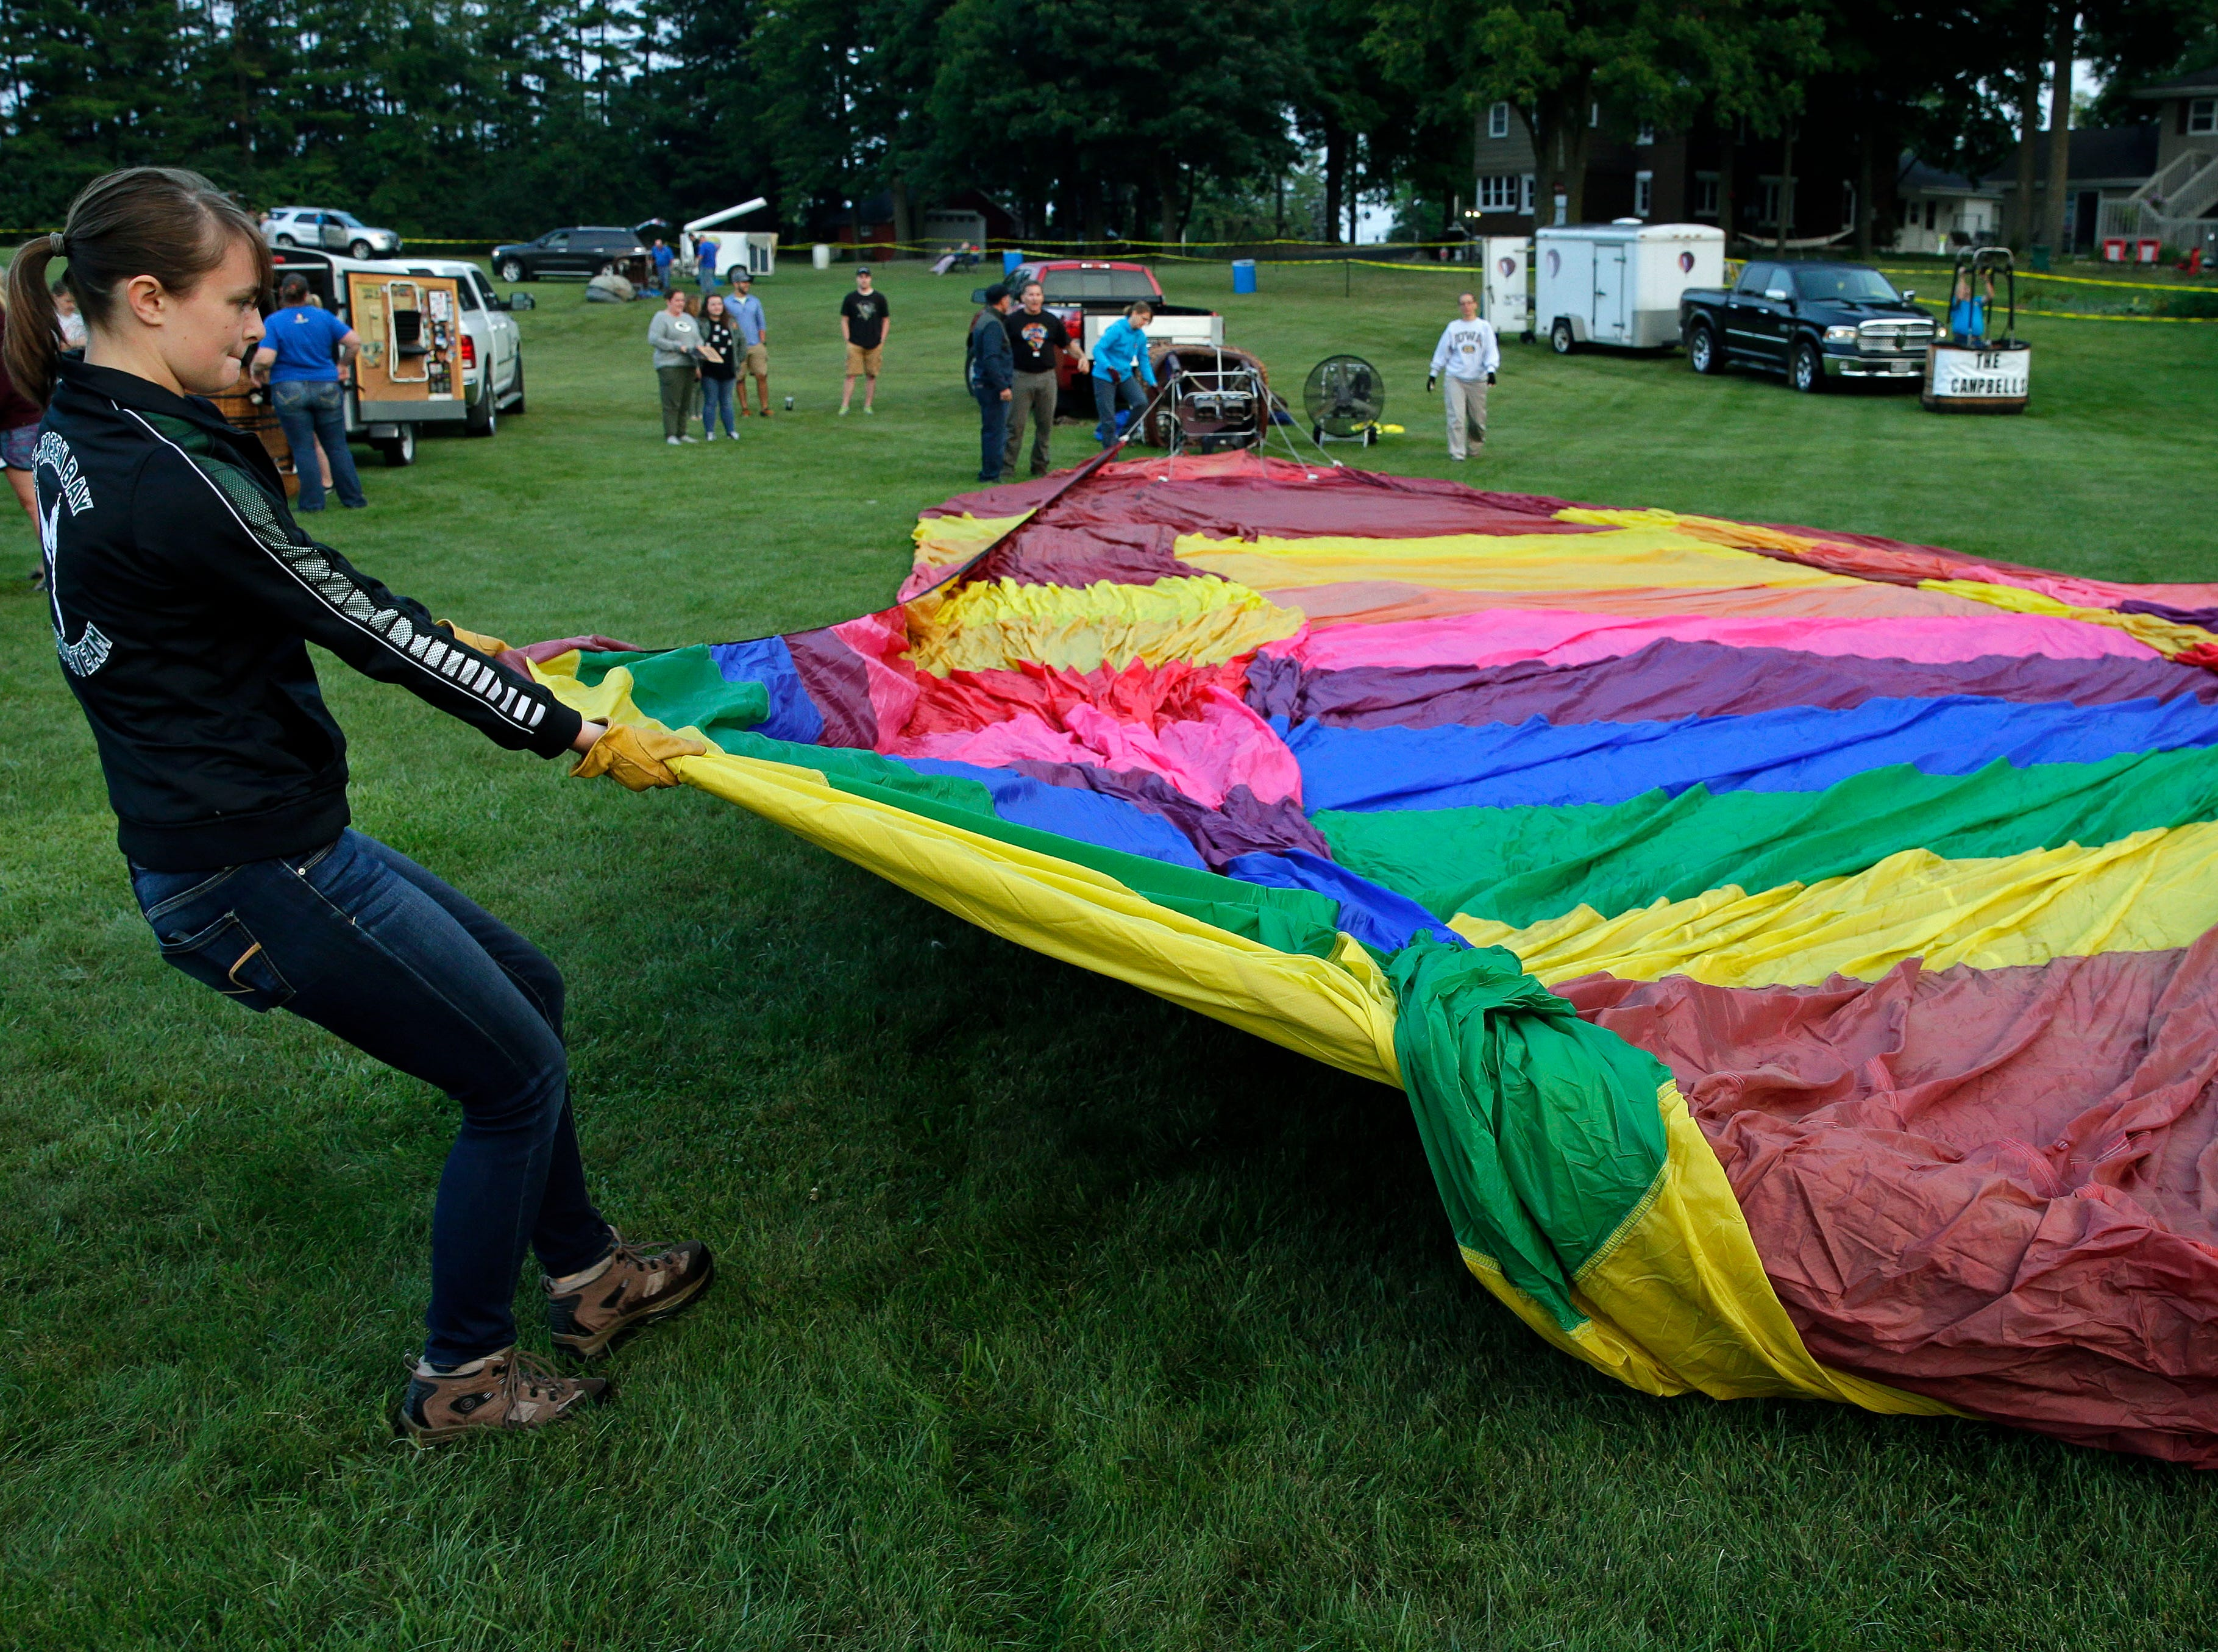 It's a team effort to get a balloon ready to take to the air during the 30th annual Burger Fest Saturday, August 11, 2018, in Seymour, Wis.